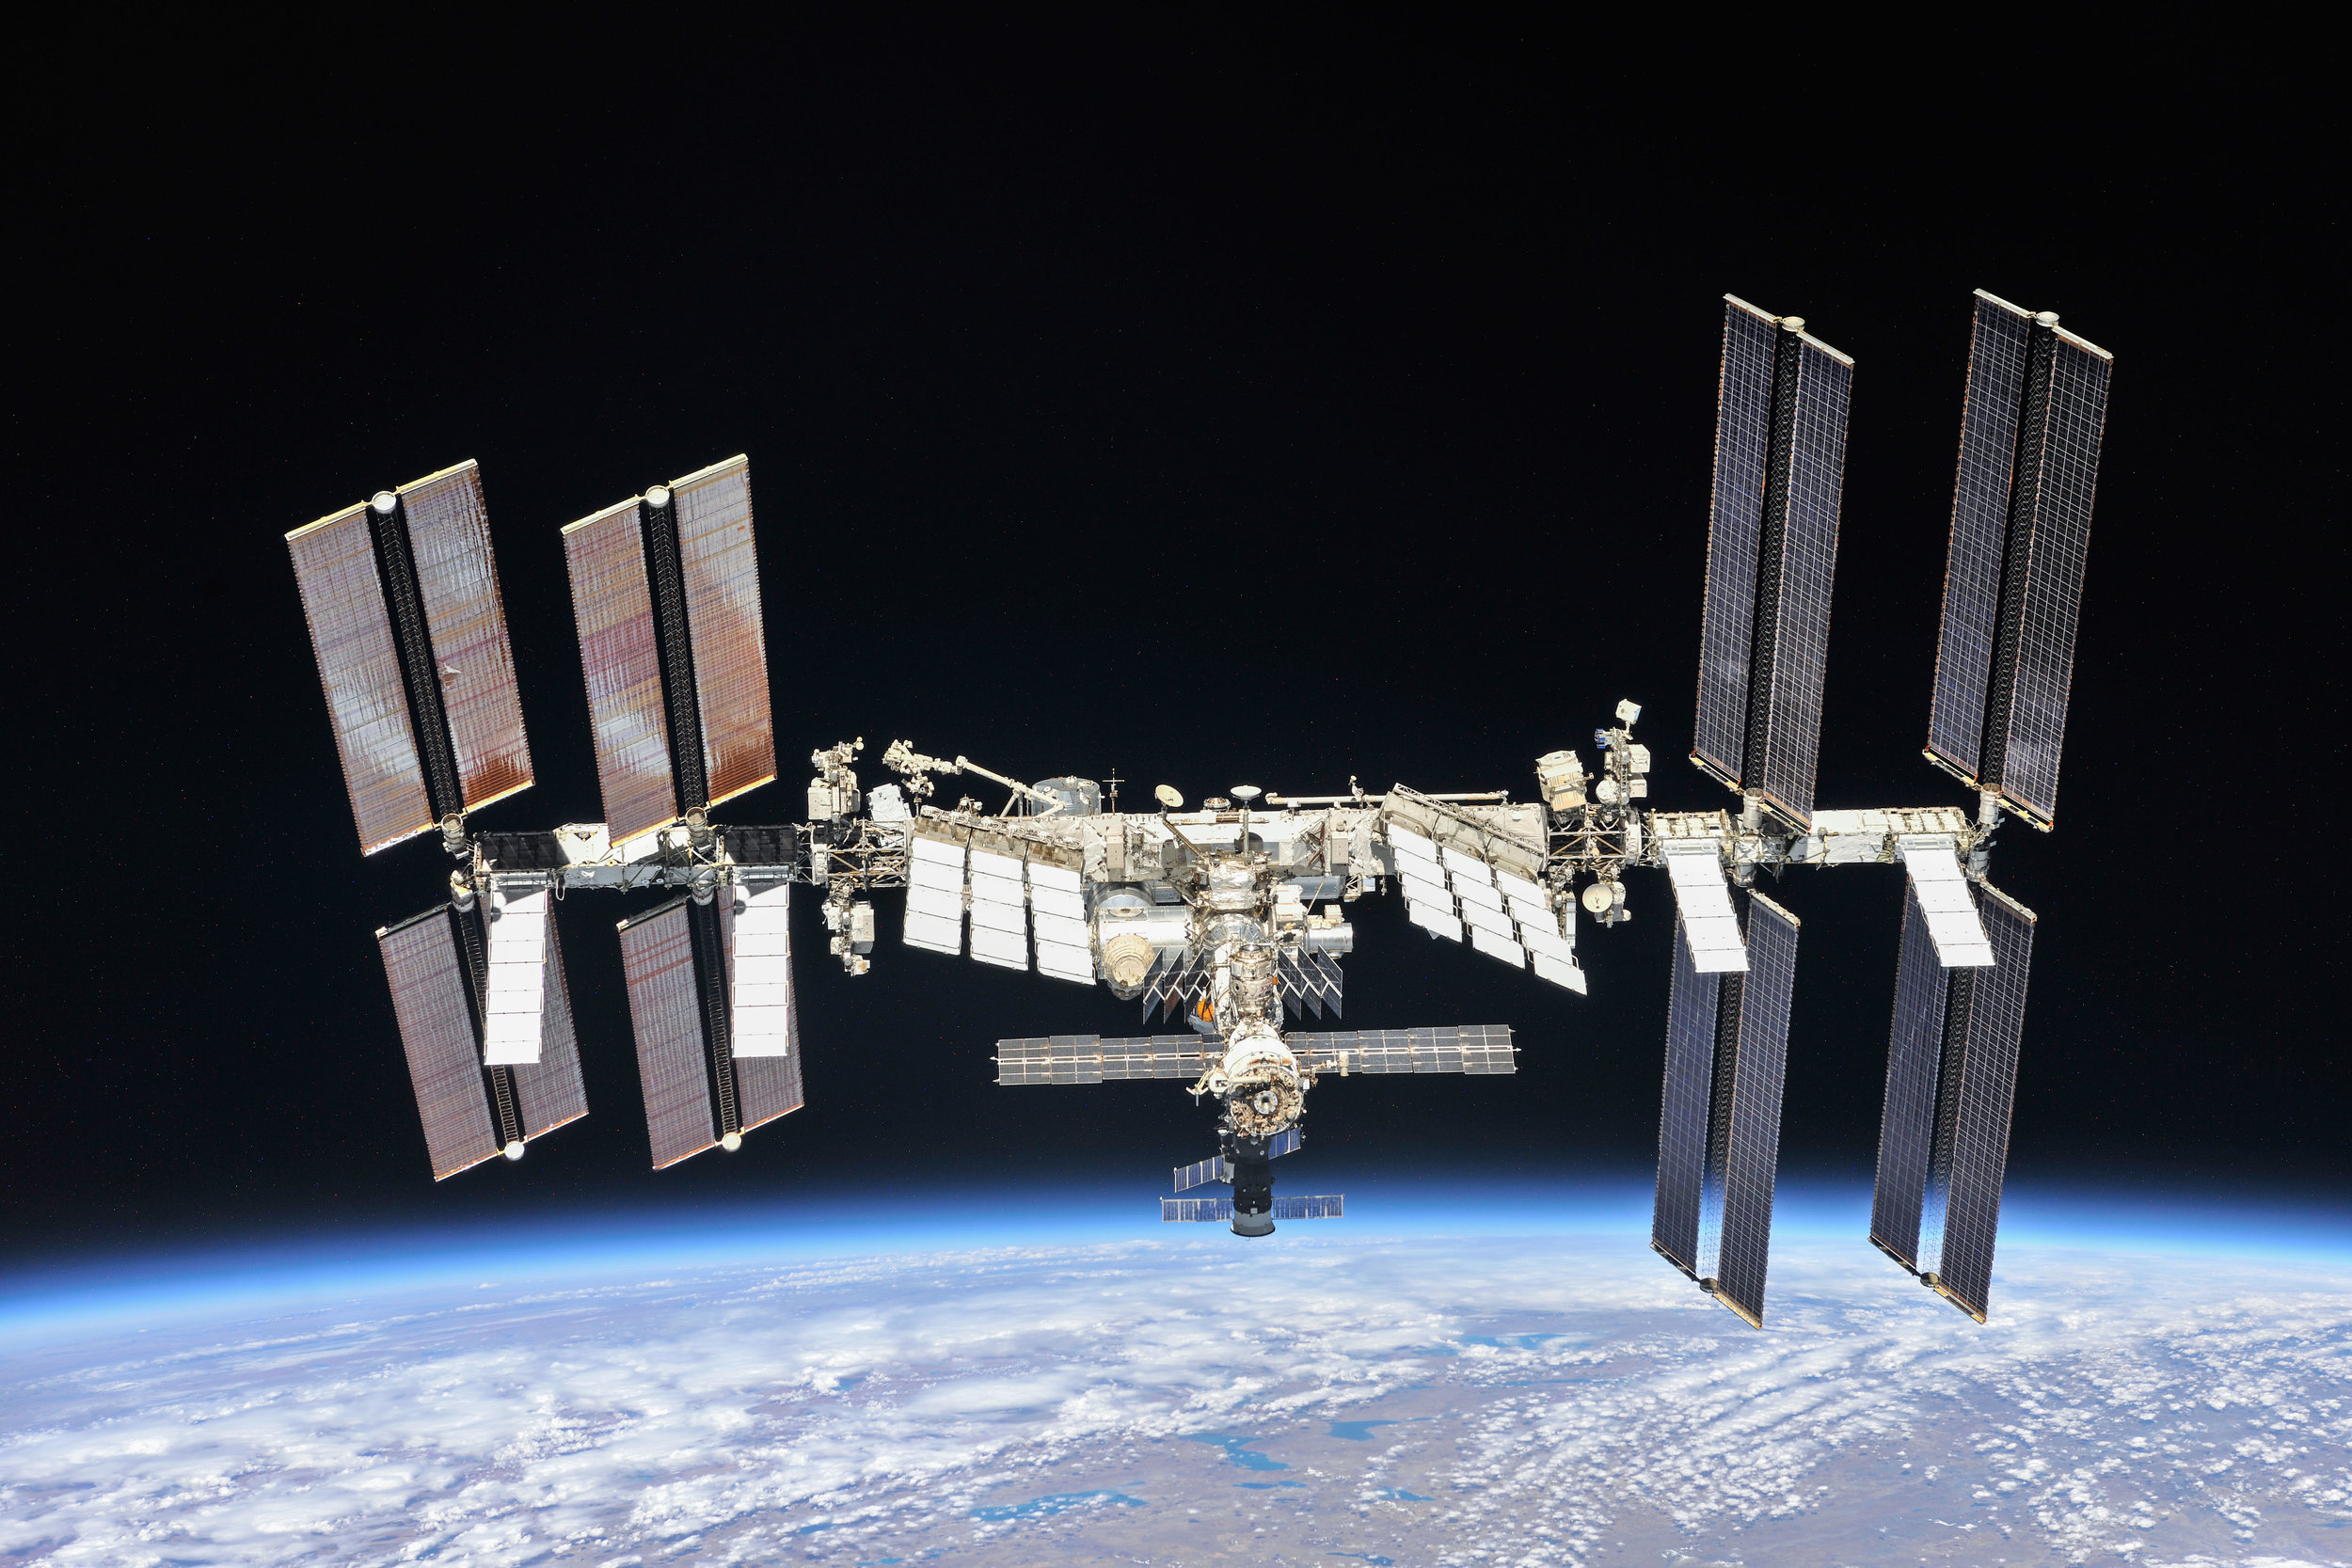 the-international-space-station-as-of-oct-4-2018_44911459904_o.jpg